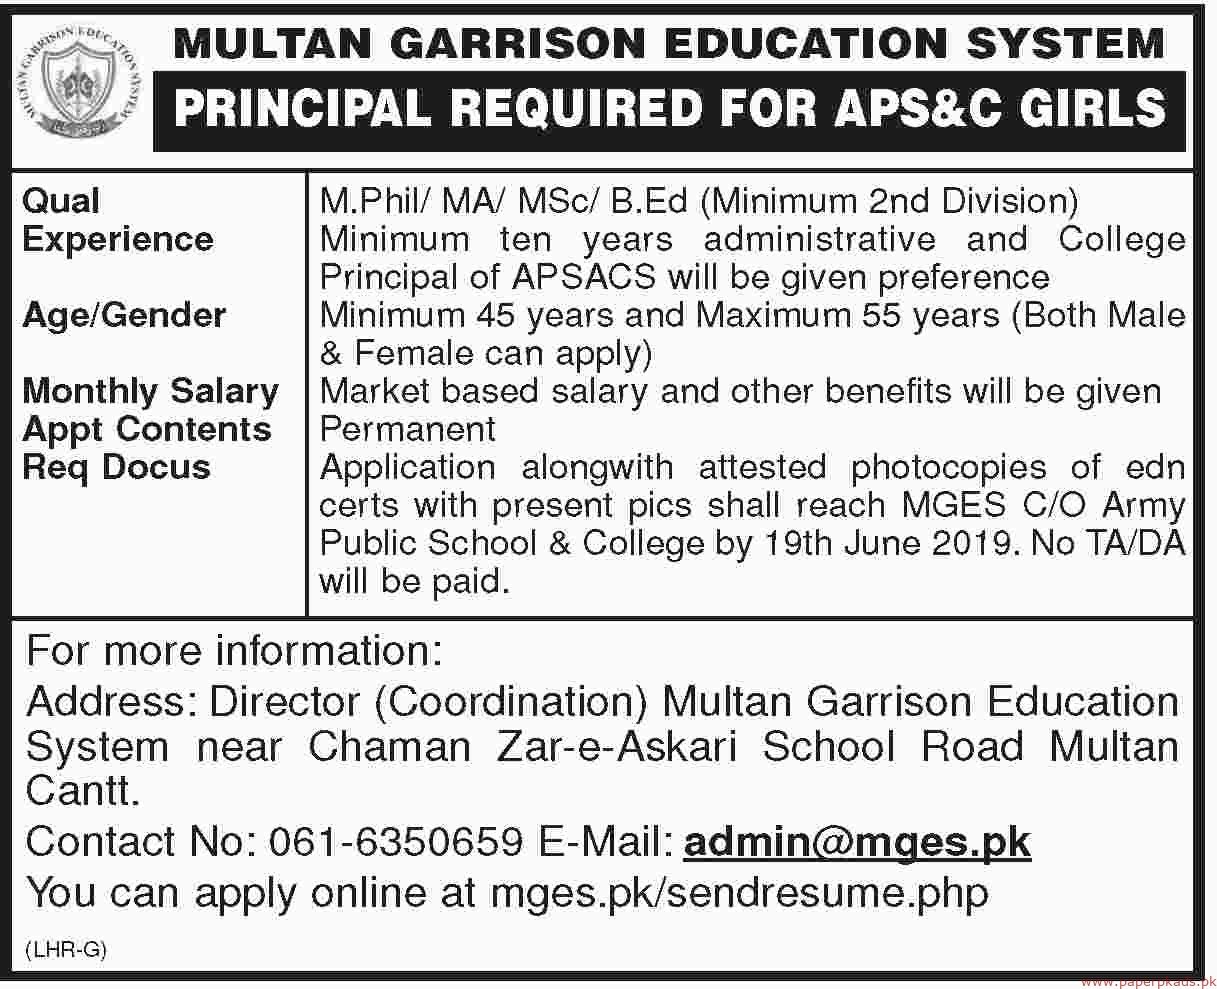 Multan Garrison Education System Jobs 2019 Latest